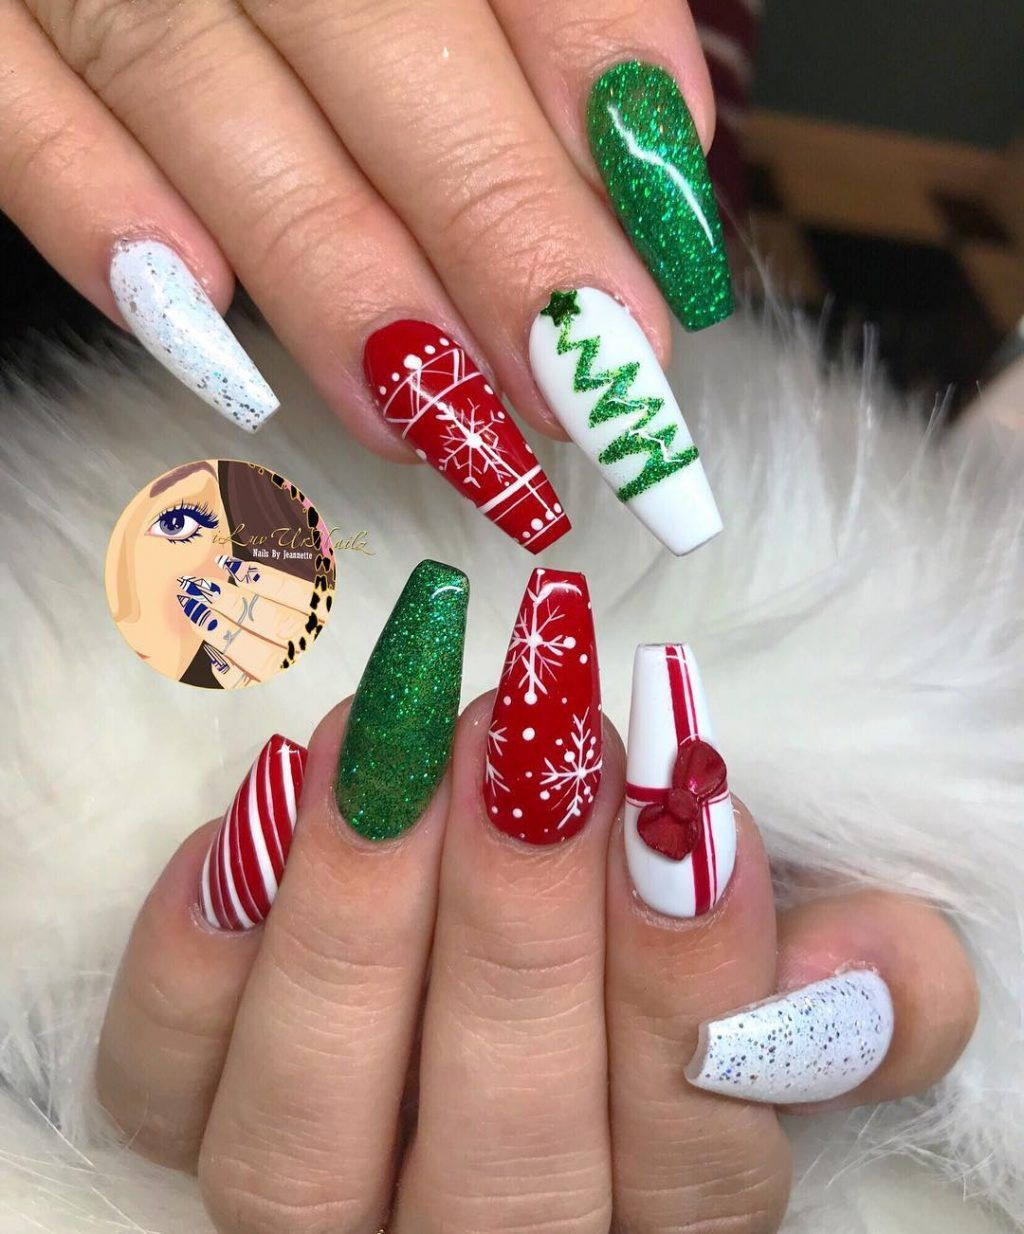 Christmas Designs For Acrylic Nails: The Cutest And Festive Christmas Nail Designs For